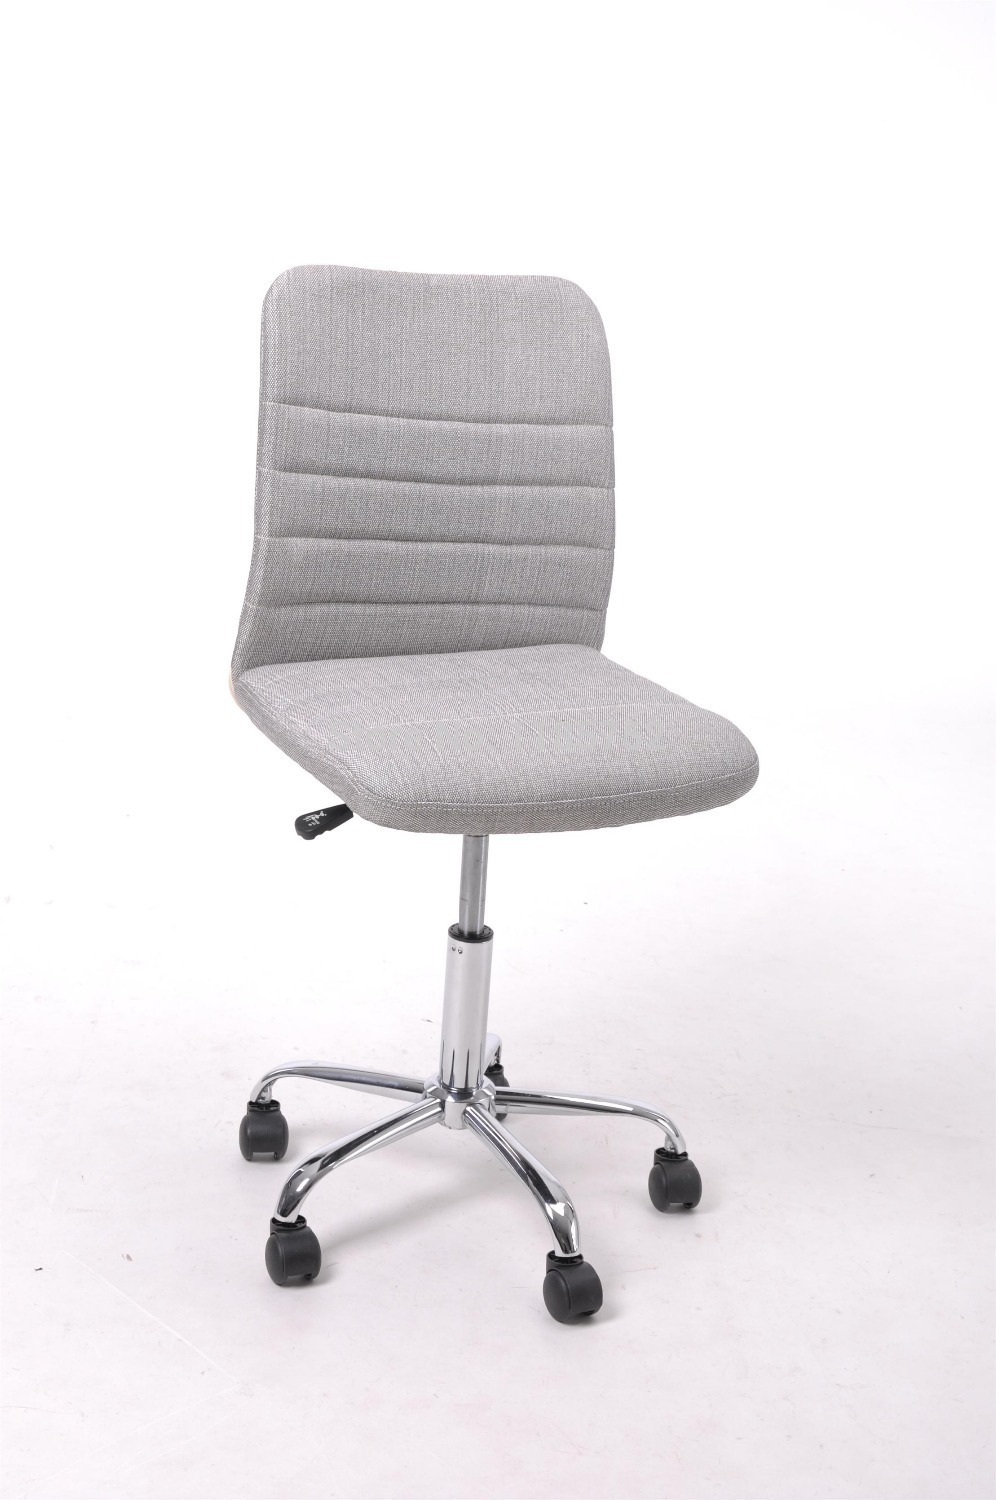 Brand New Grey Lift Chair Office Chair Without Arms Computer Chair For Bedroom Office Furniture Living Room Chair